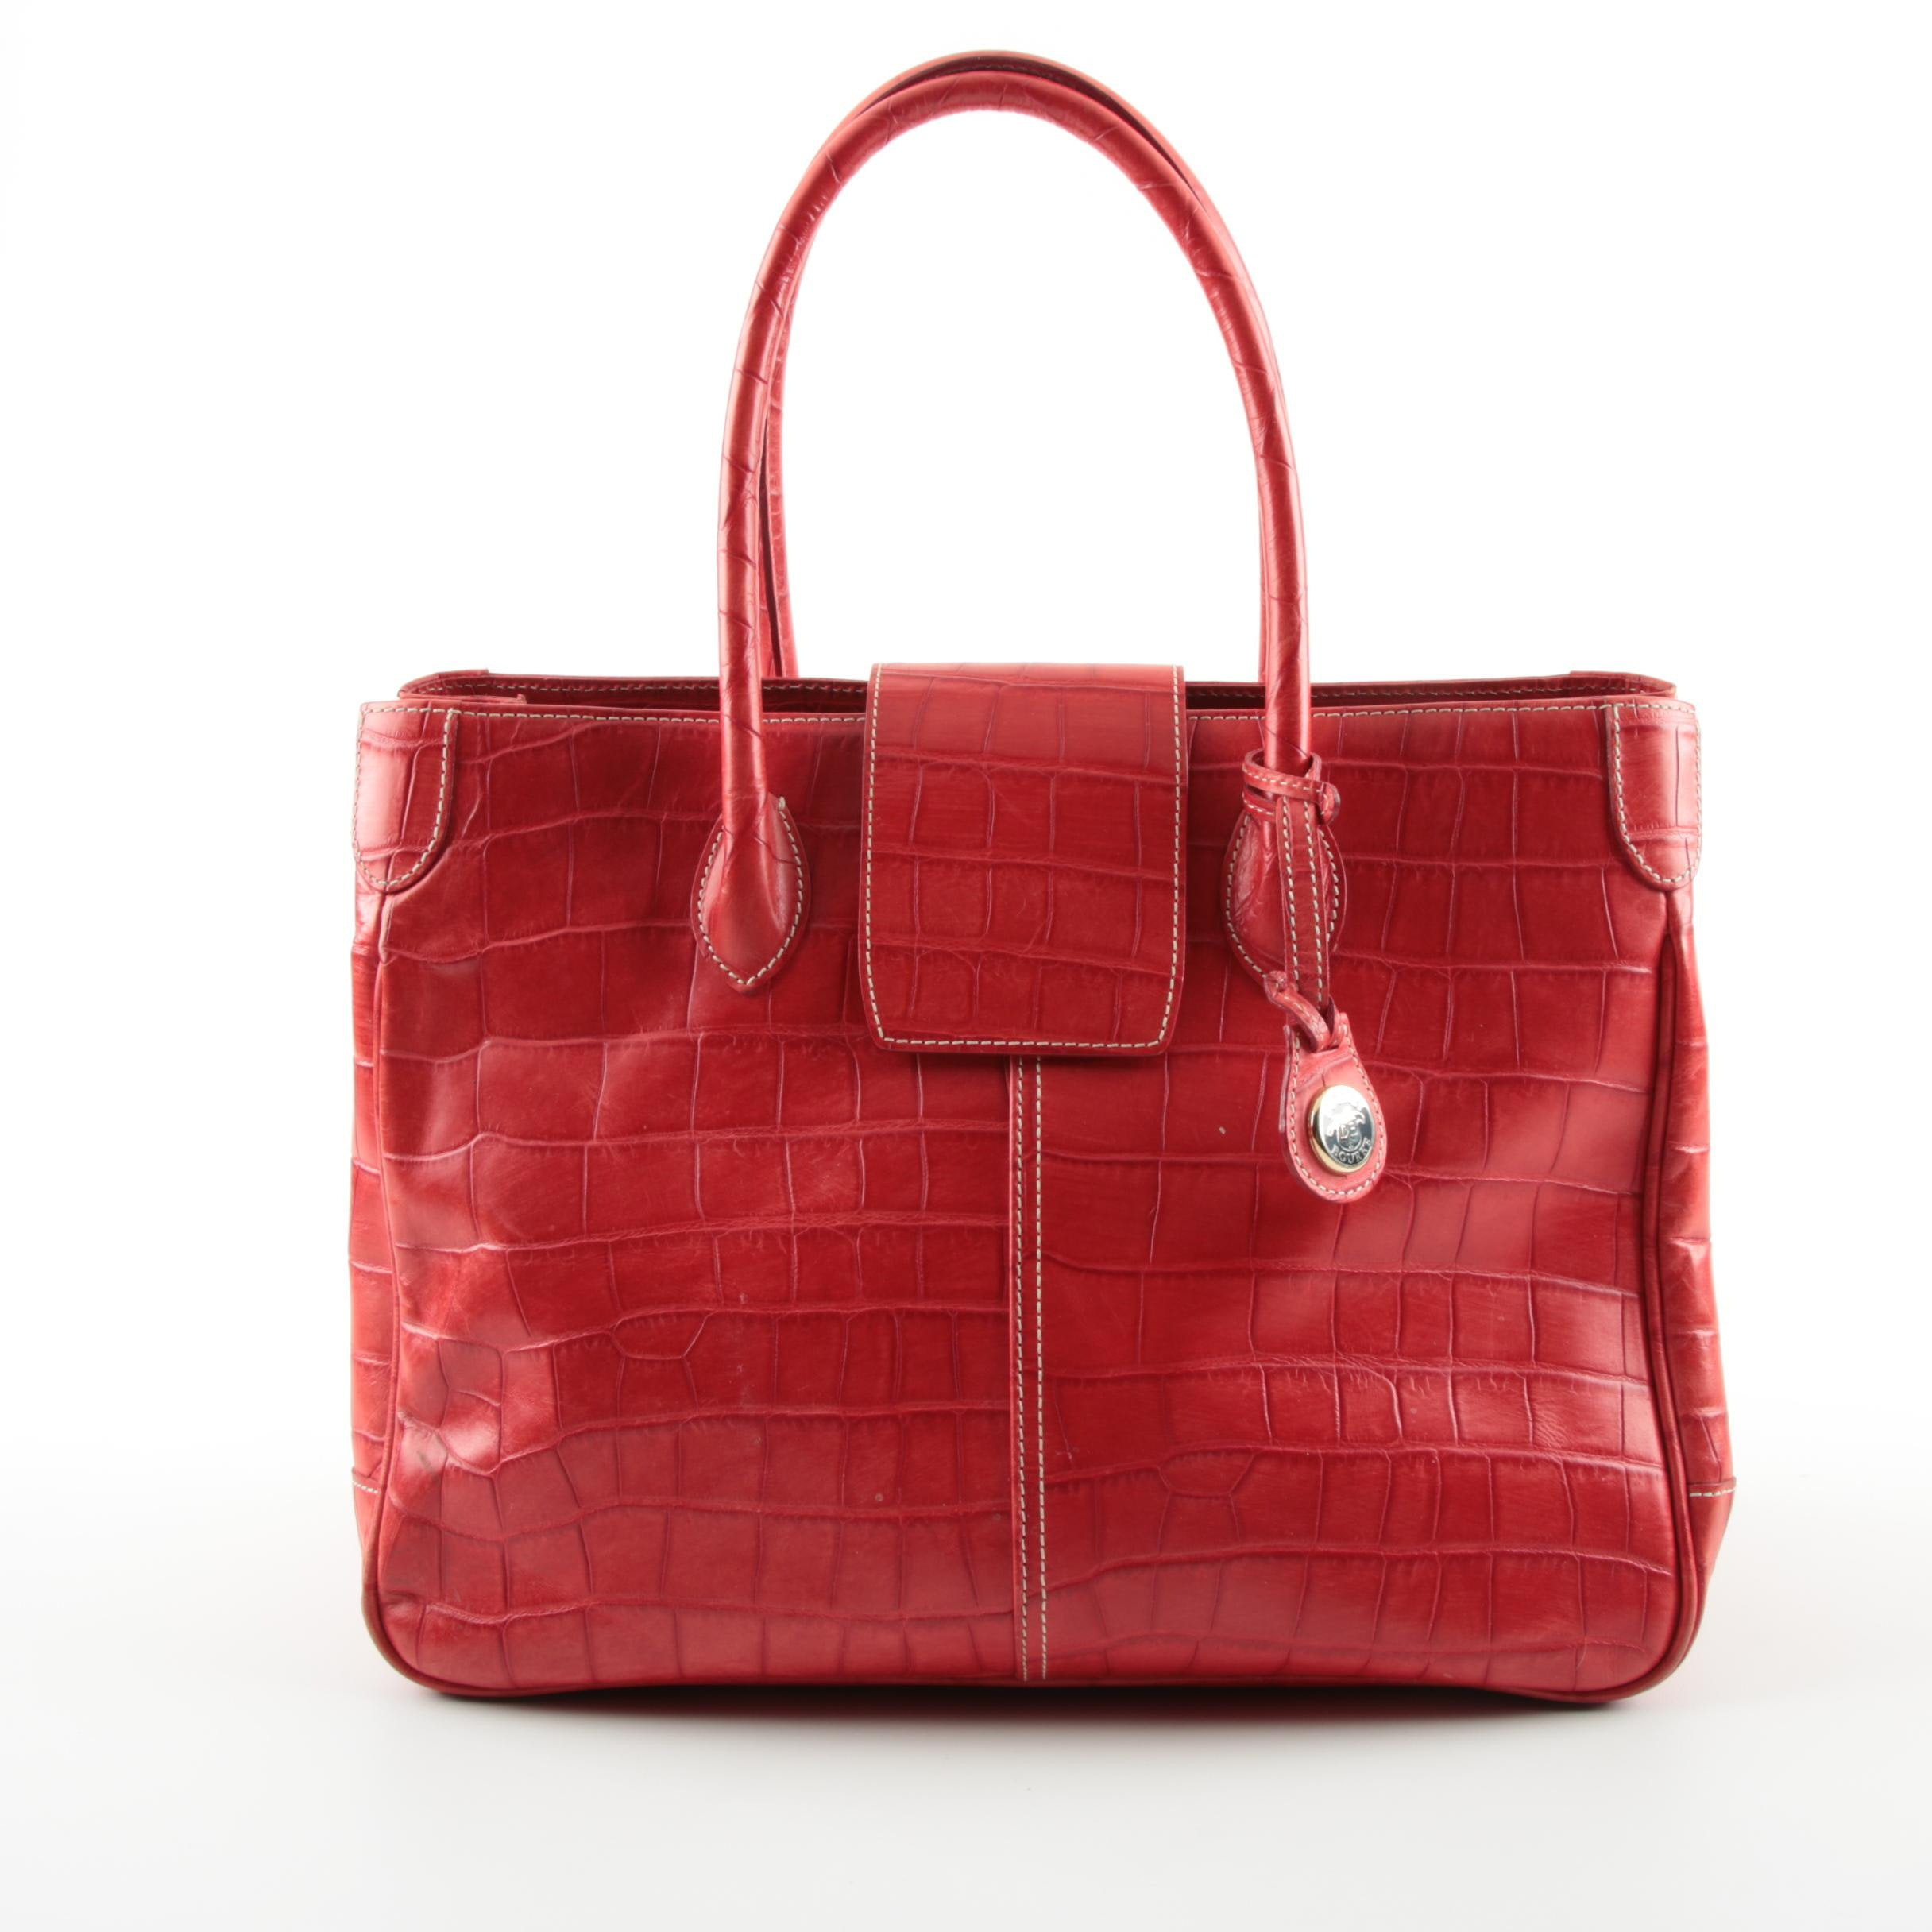 Dooney & Bourke Red Embossed Leather Handbag